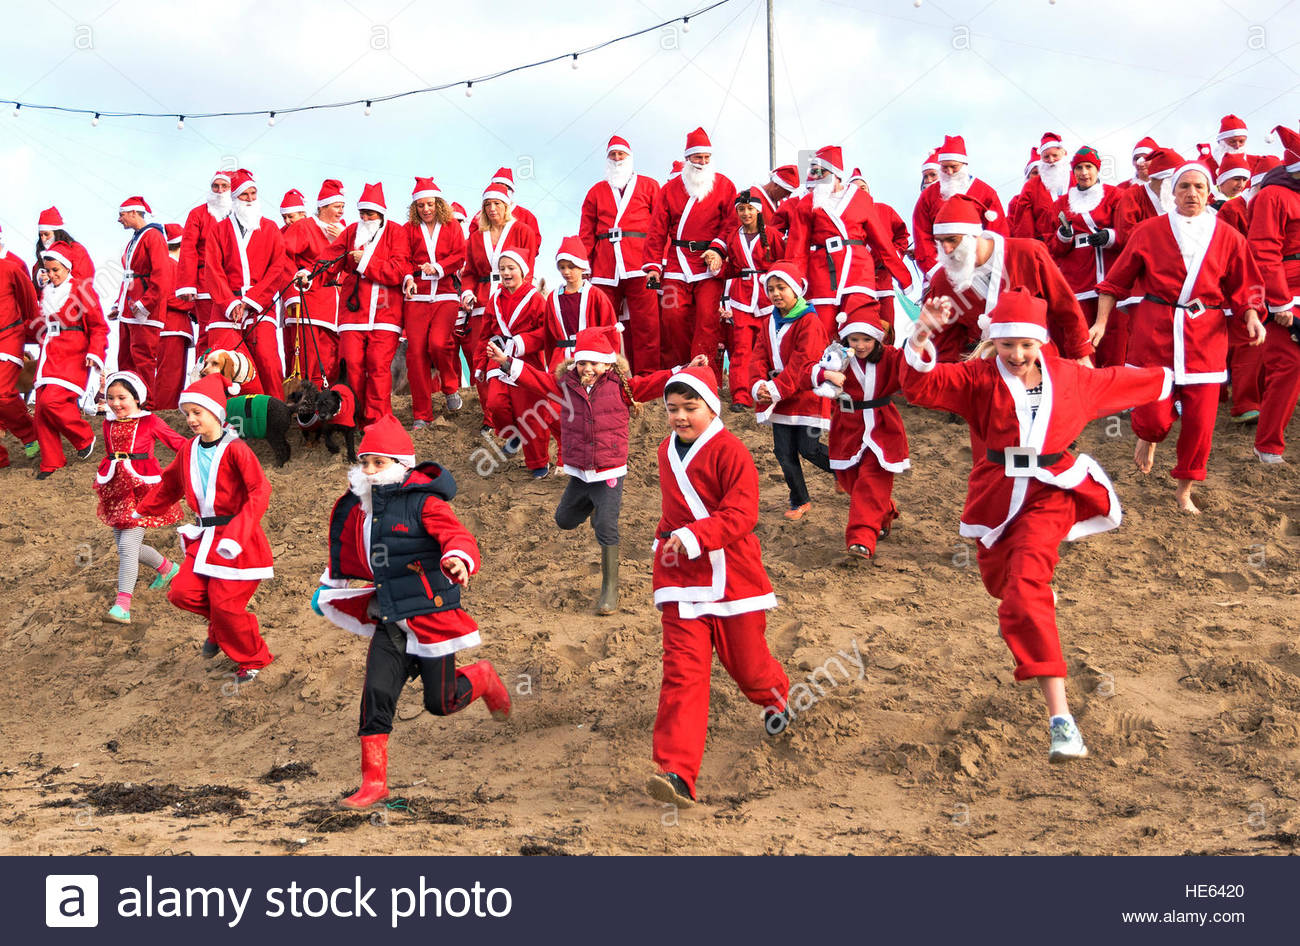 Perranporth, Cornwall, UK. 18th December 2016. Santa's on the sand an annual charity run on Perranporth beach in Stock Photo